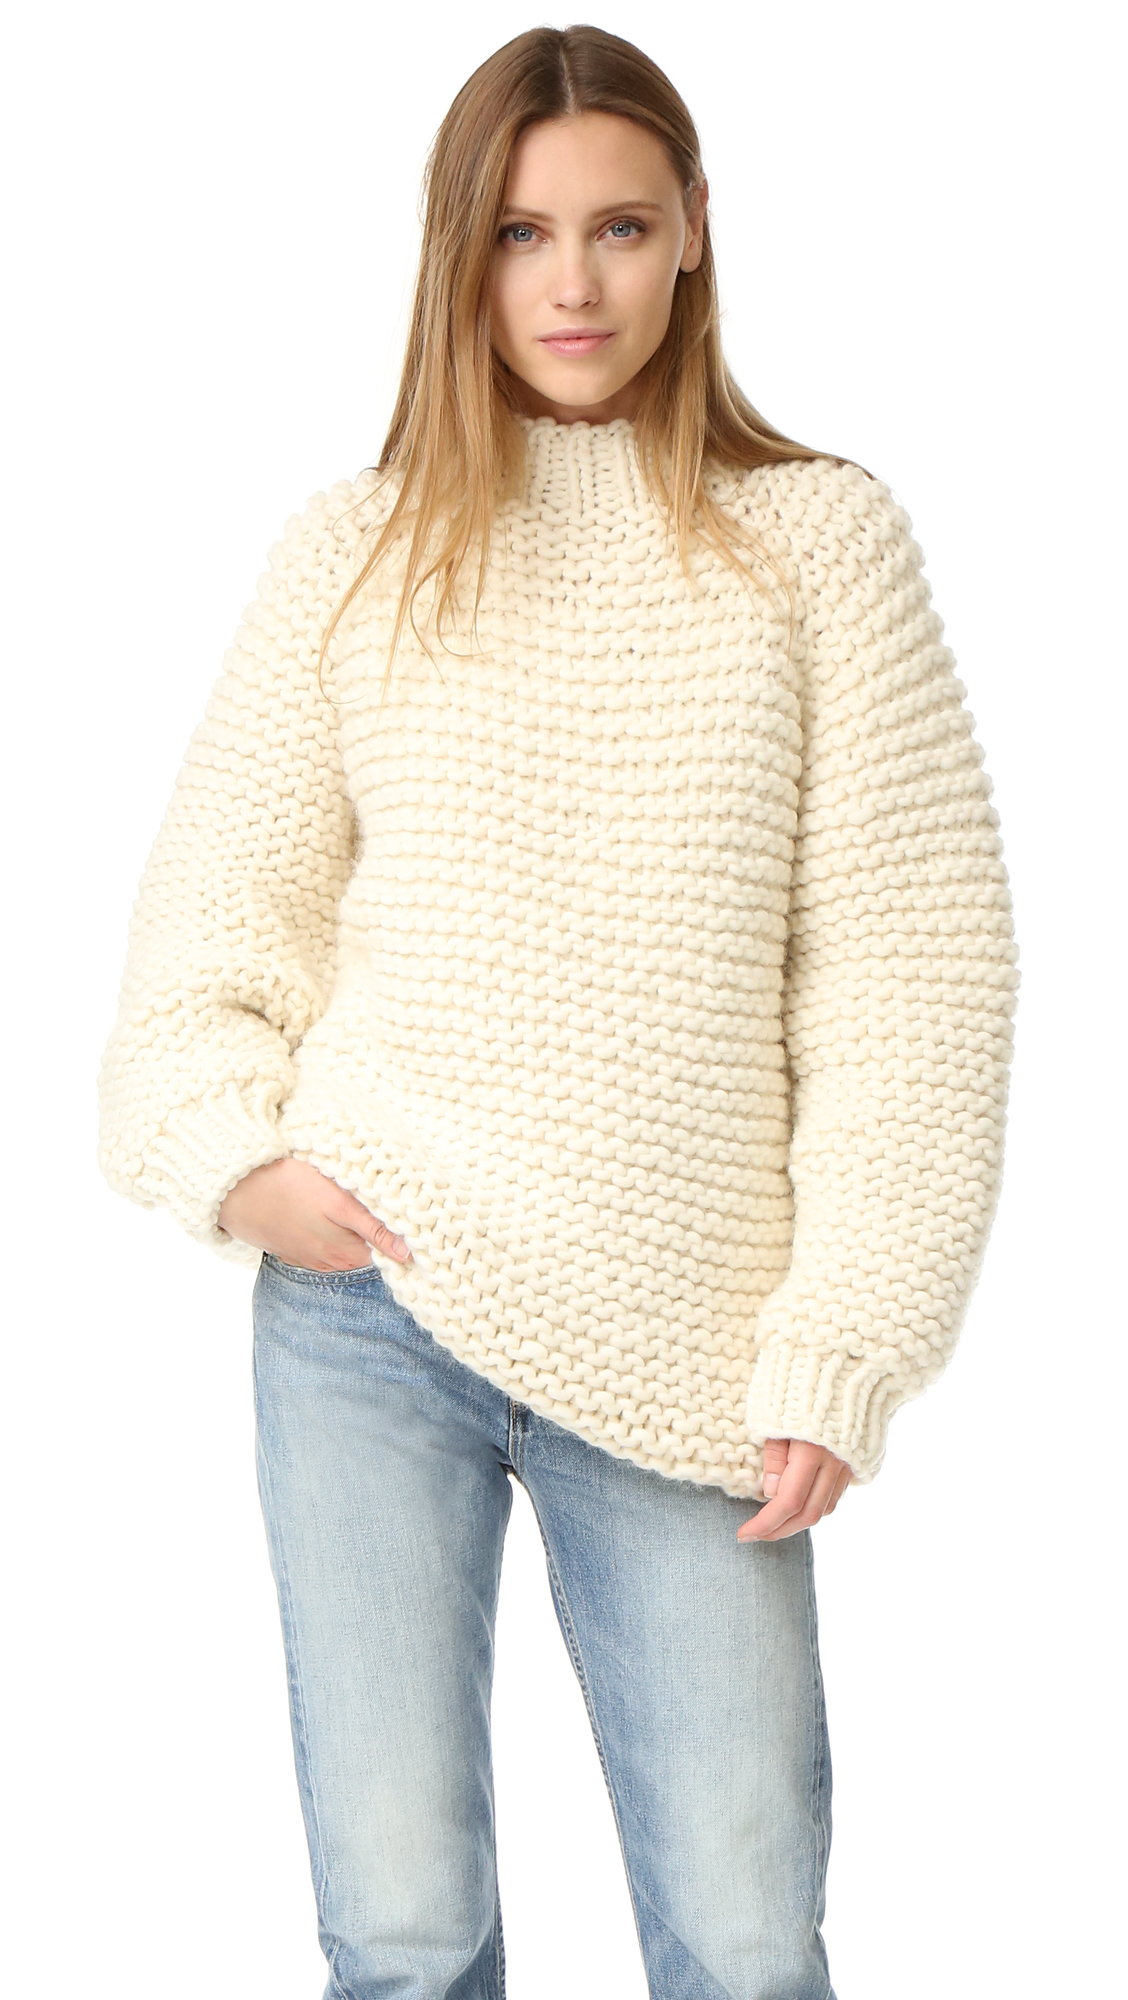 A ultra cozy I Love Mr Mittens turtleneck sweater, composed of chunky, open knit. Long raglan sleeves. Ribbed edges. Fabric: Chunky knit. 100% wool. Hand wash or dry clean. Imported, Peru. Measurements Length: 26.5in / 67cm, from shoulder